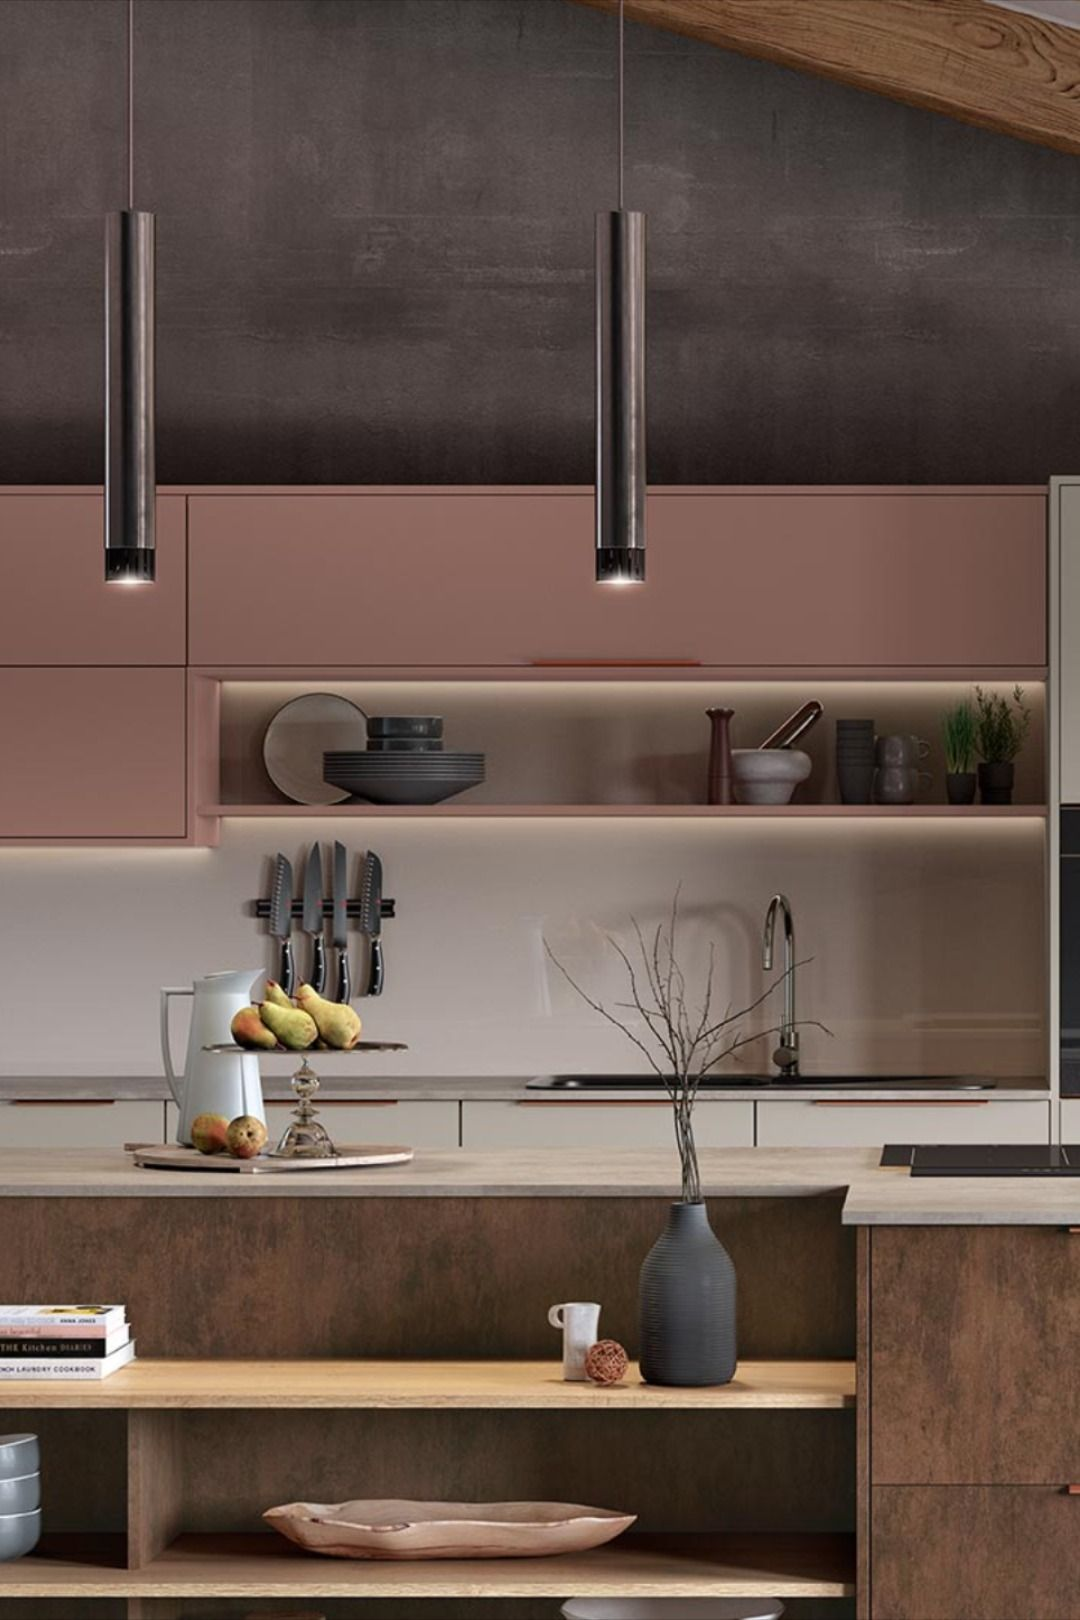 Pin By Moulton Kitchens Ltd On The Signature Collection In 2020 Modern Kitchen Design Modern Kitchen Wall Cabinet